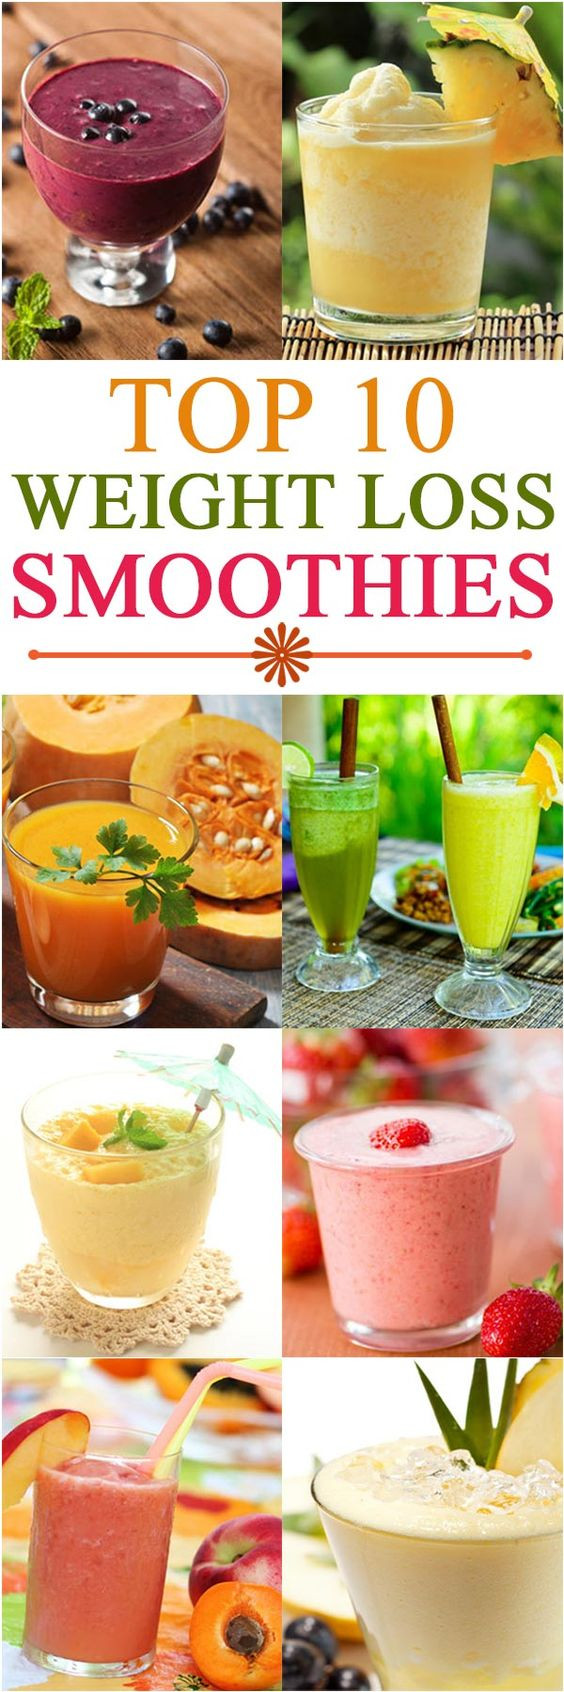 Vegetable Smoothie Recipes For Weight Loss  Your Weight Loss Prescription Make e For Breakfast